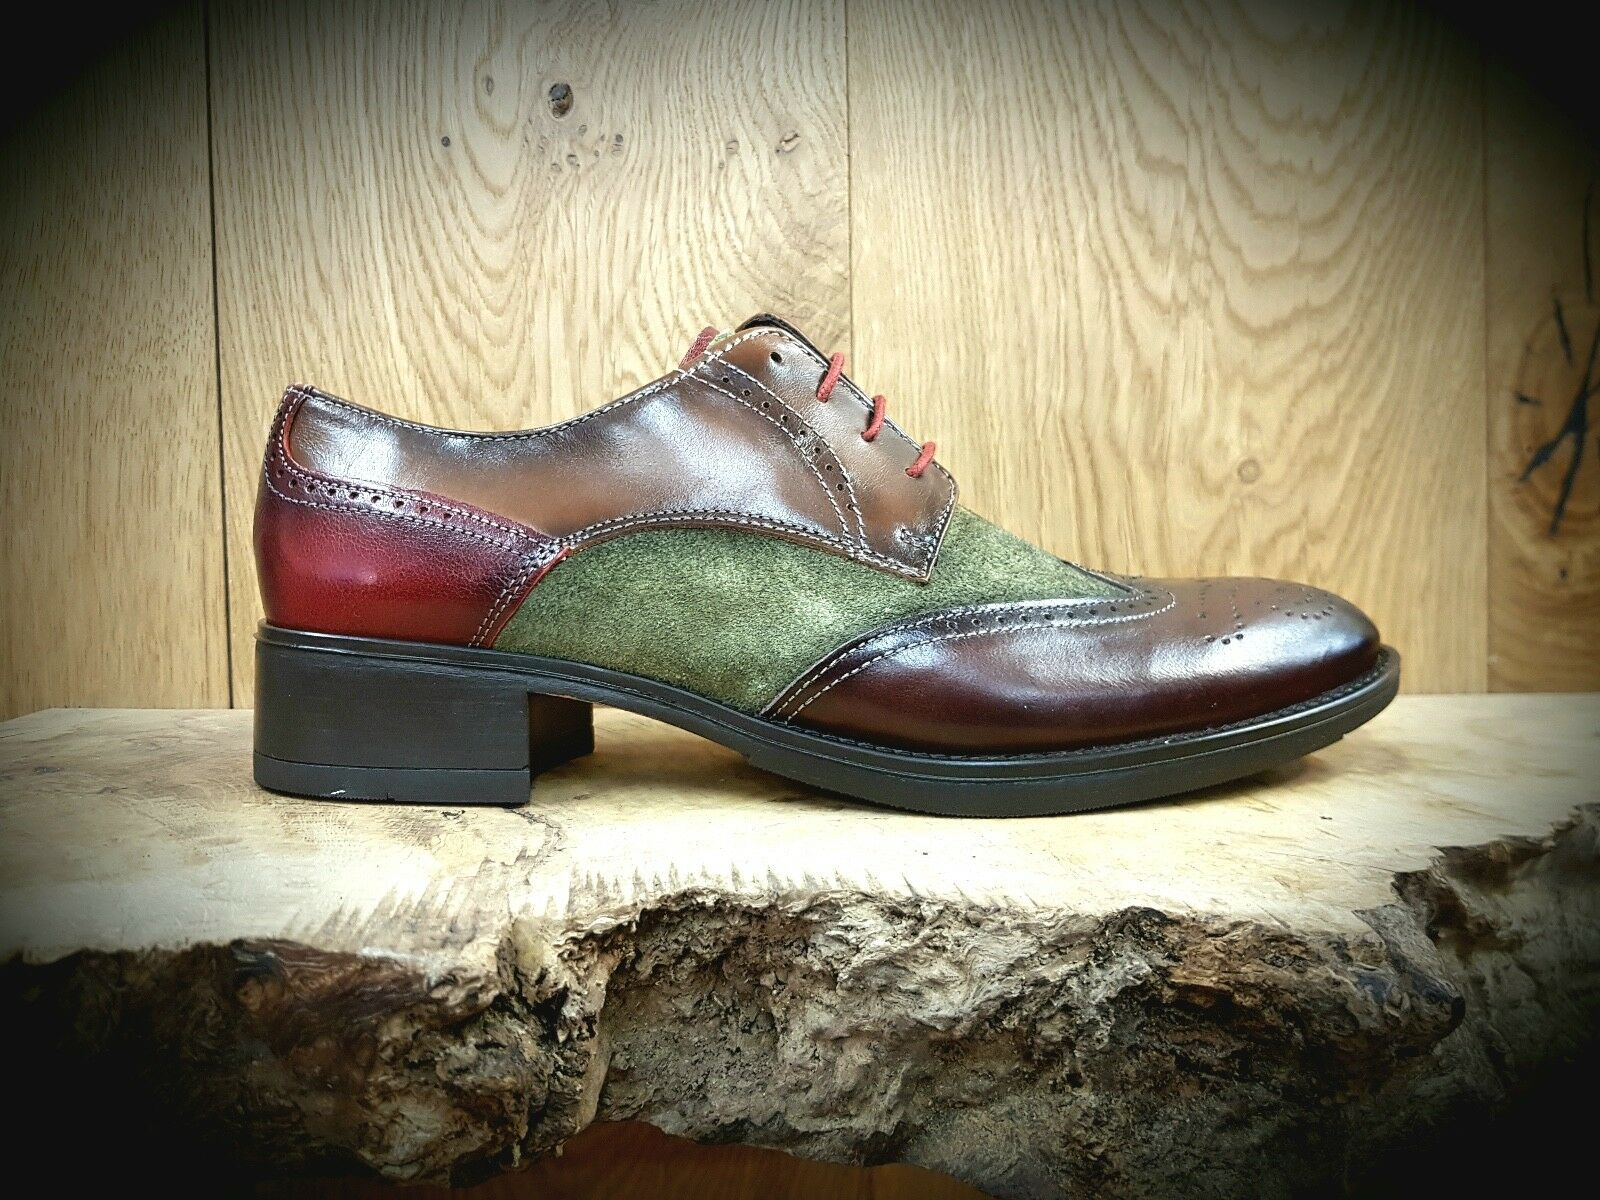 Luis Gonzalo // 4743M // Handmade Womens Three-tone Brogues Brogues Brogues Shoes // NEW dbe3bb